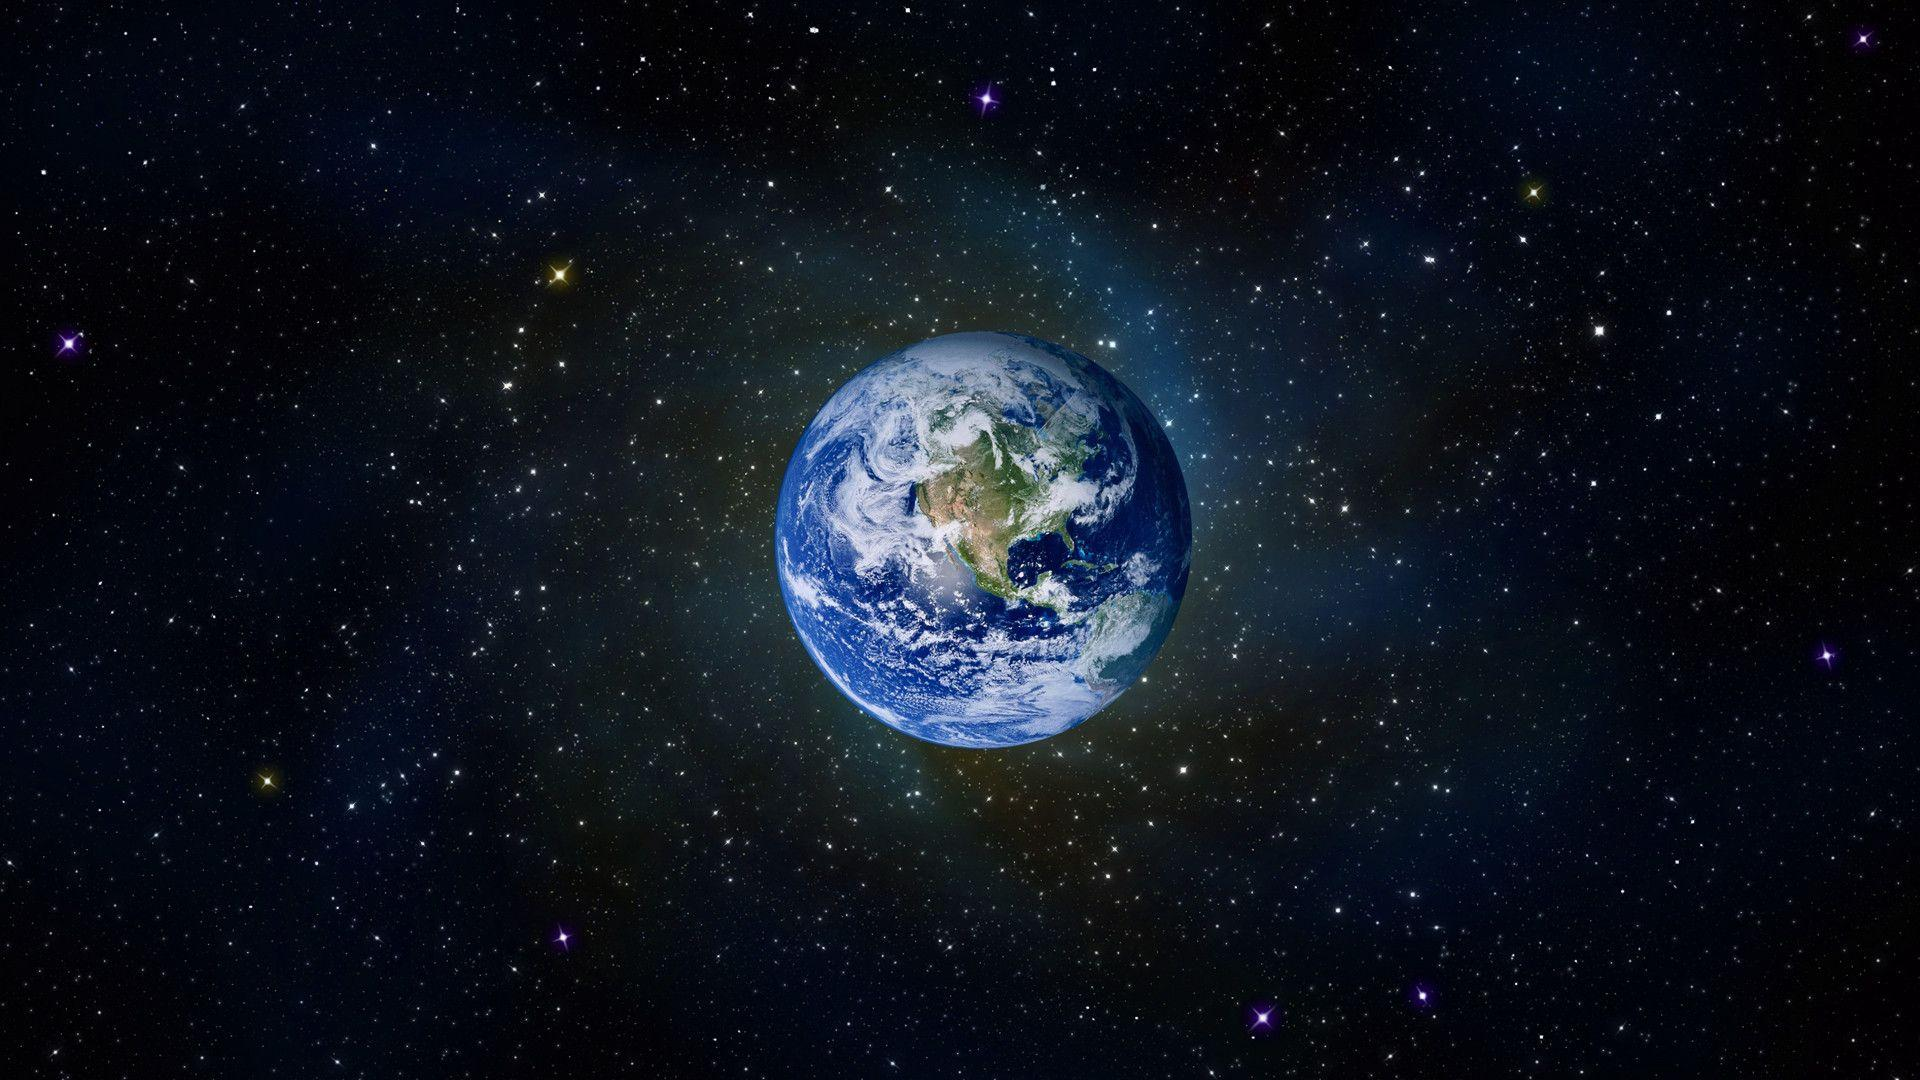 Space Hd Wallpapers 1080p Wallpaper Cave